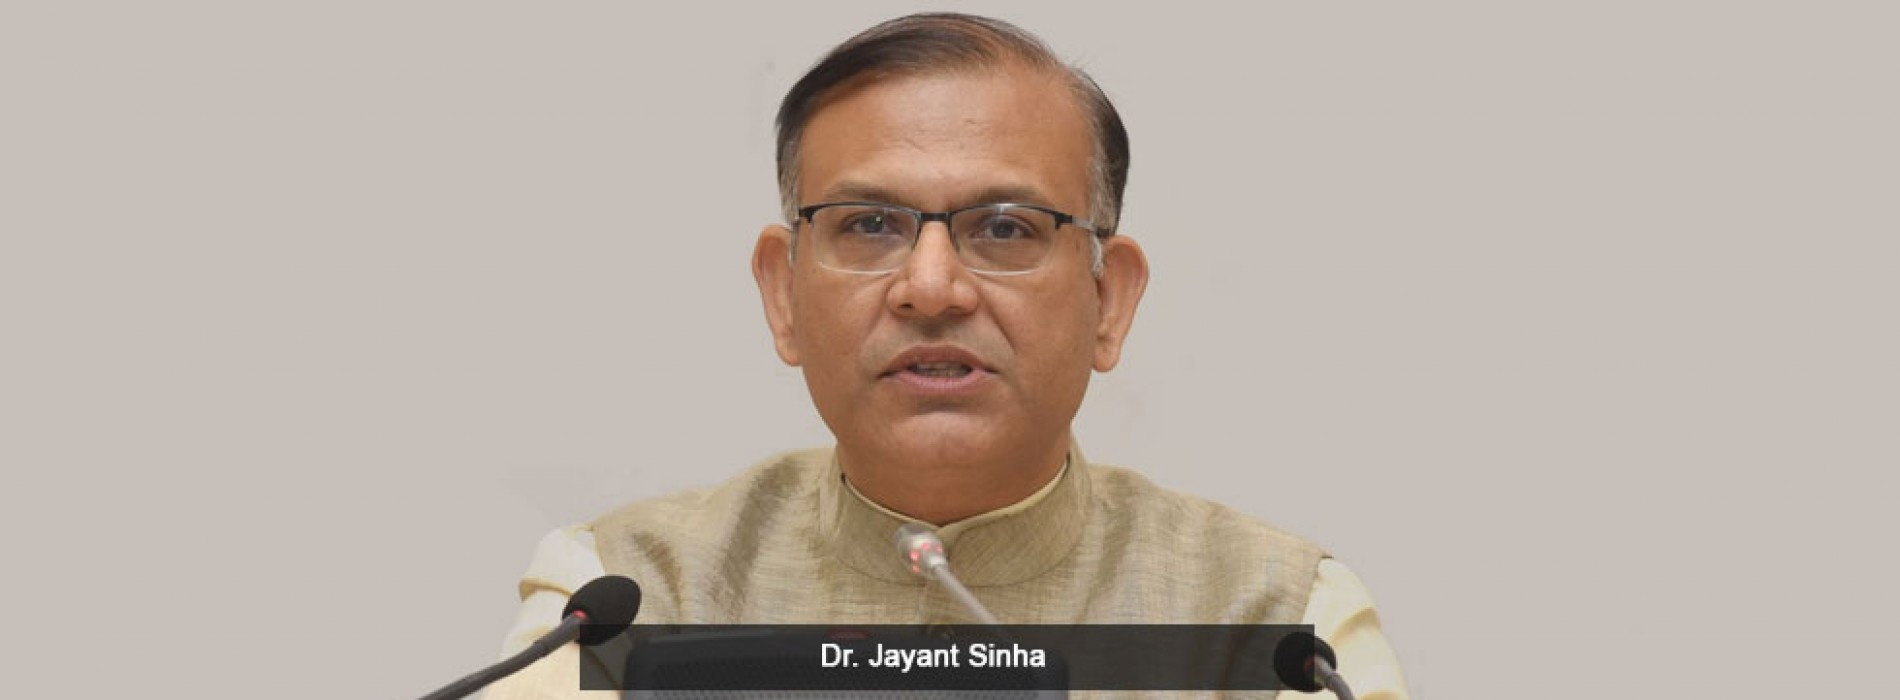 Dr Jayant Sinha becomes the new MoS of Civil Aviation